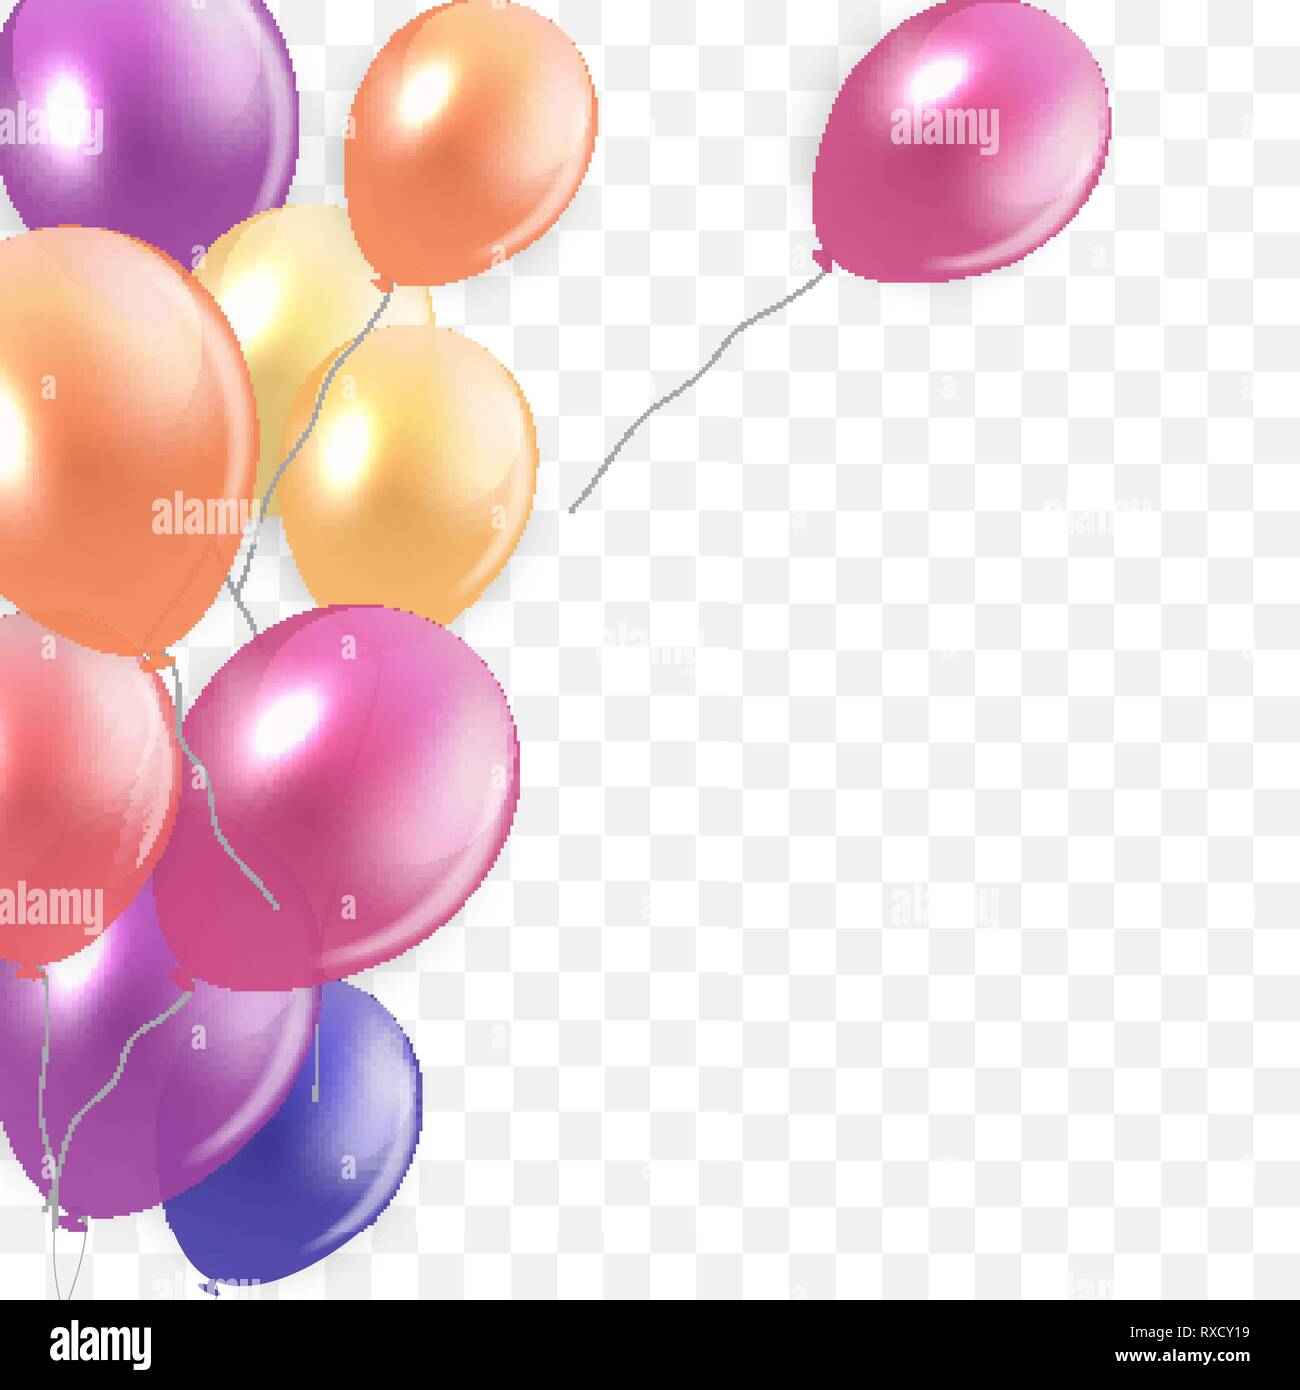 Glossy Happy Birthday Concept With Balloons Isolated On Transparent